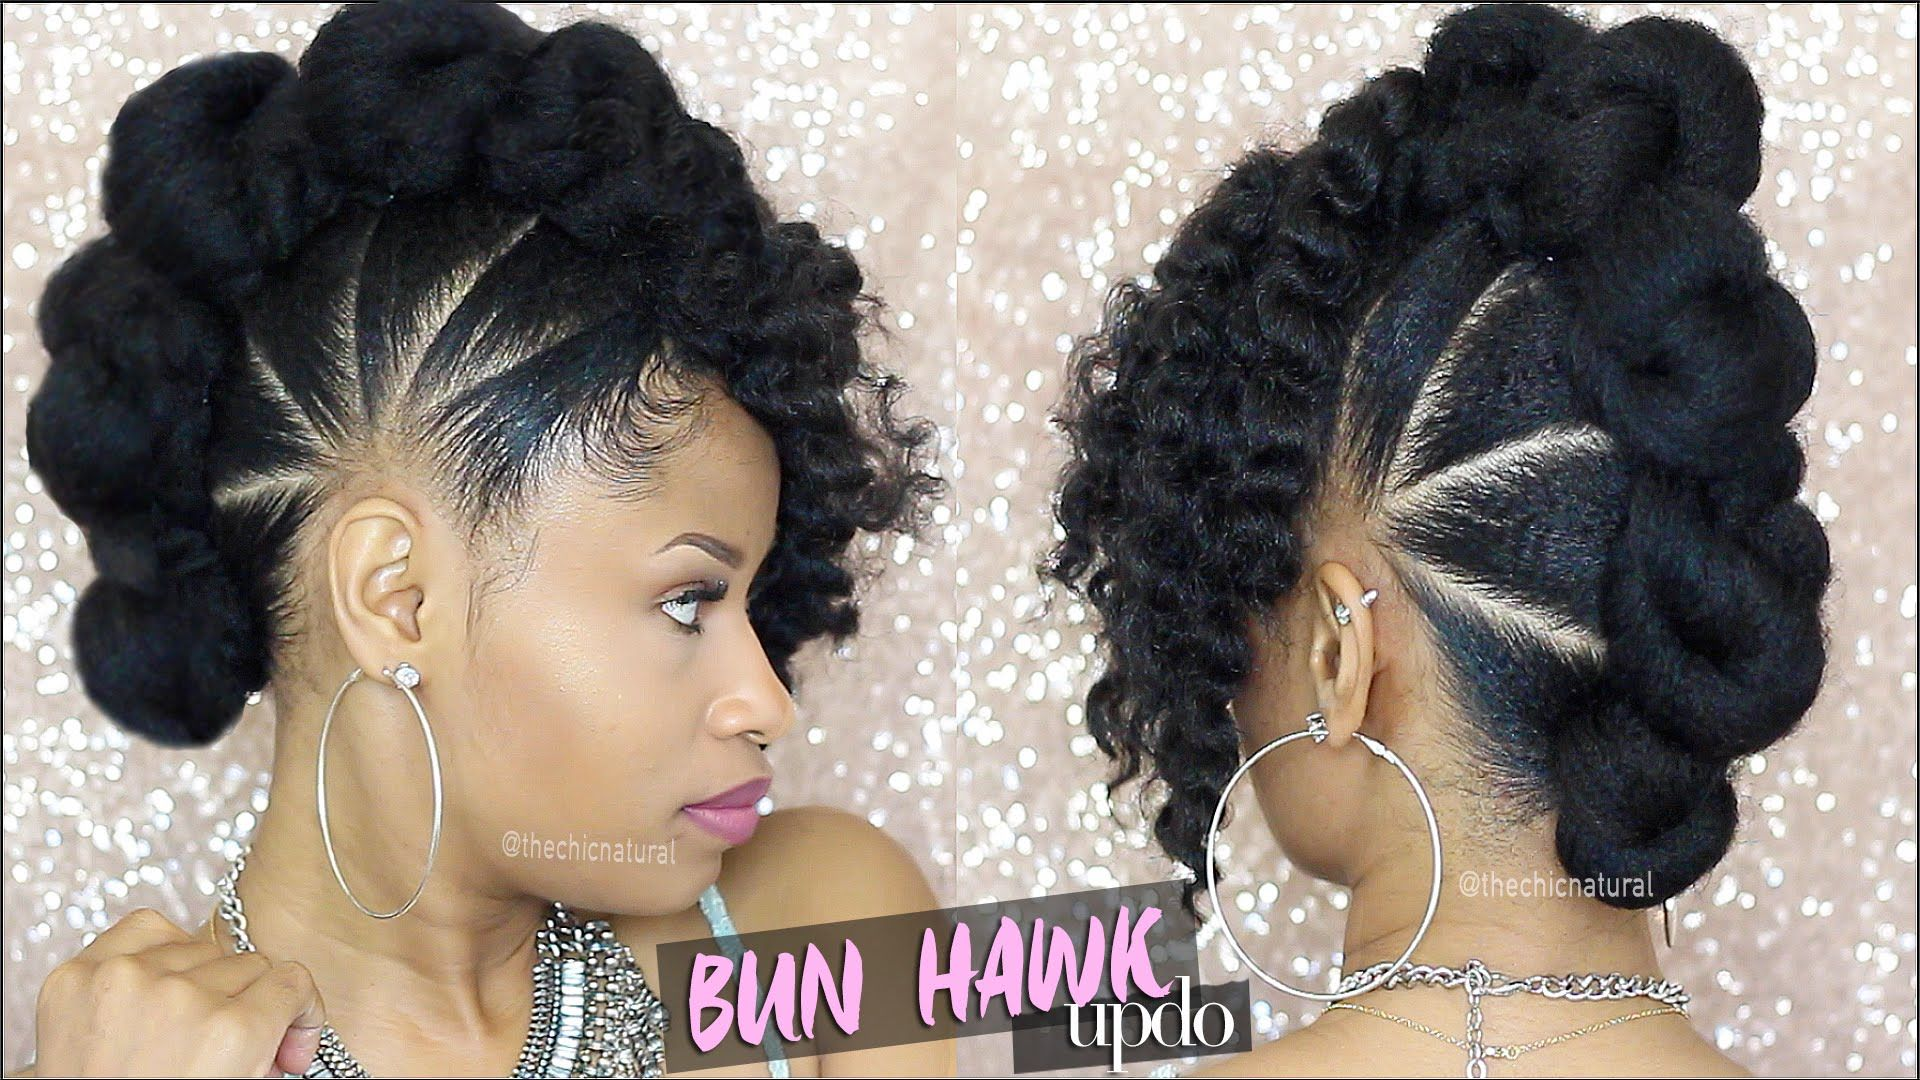 BAD AZZ BUN-HAWK UPDO Natural Hair Tutorial - YouTube | Girl Love Your Hair! in 2019 | Natural ...